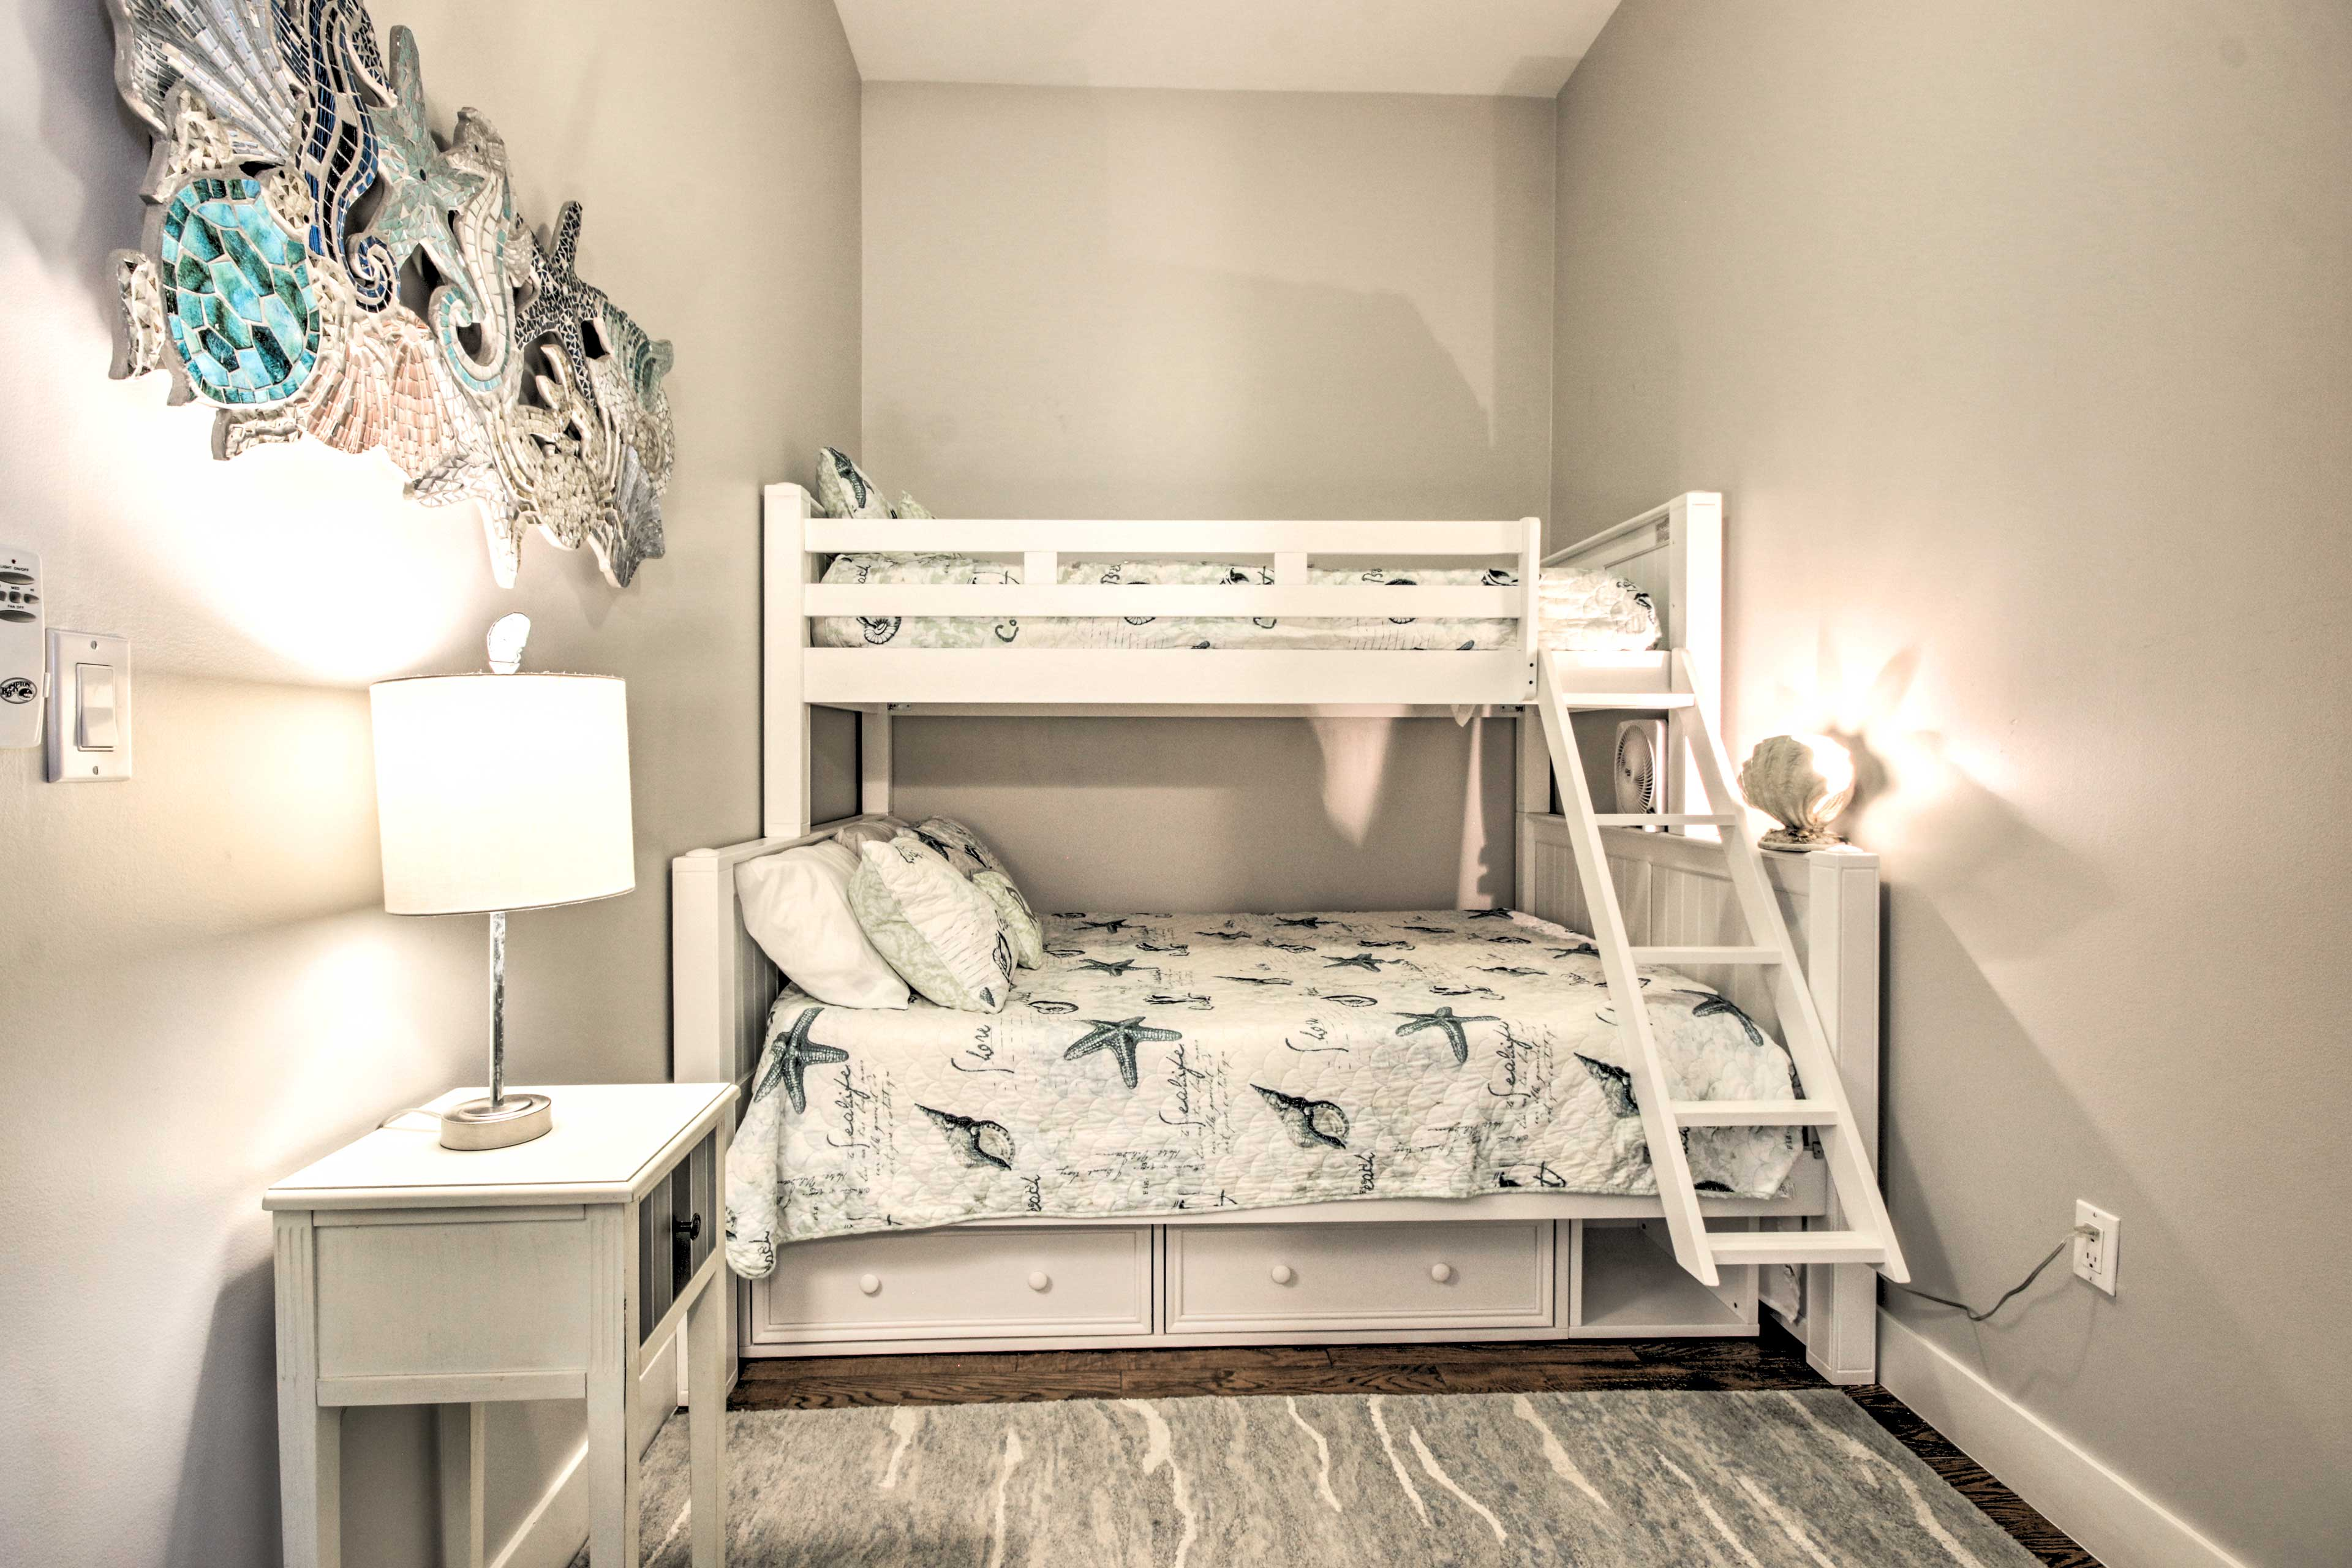 The third bedroom has a XL twin/queen bunk bed for 3 guests.